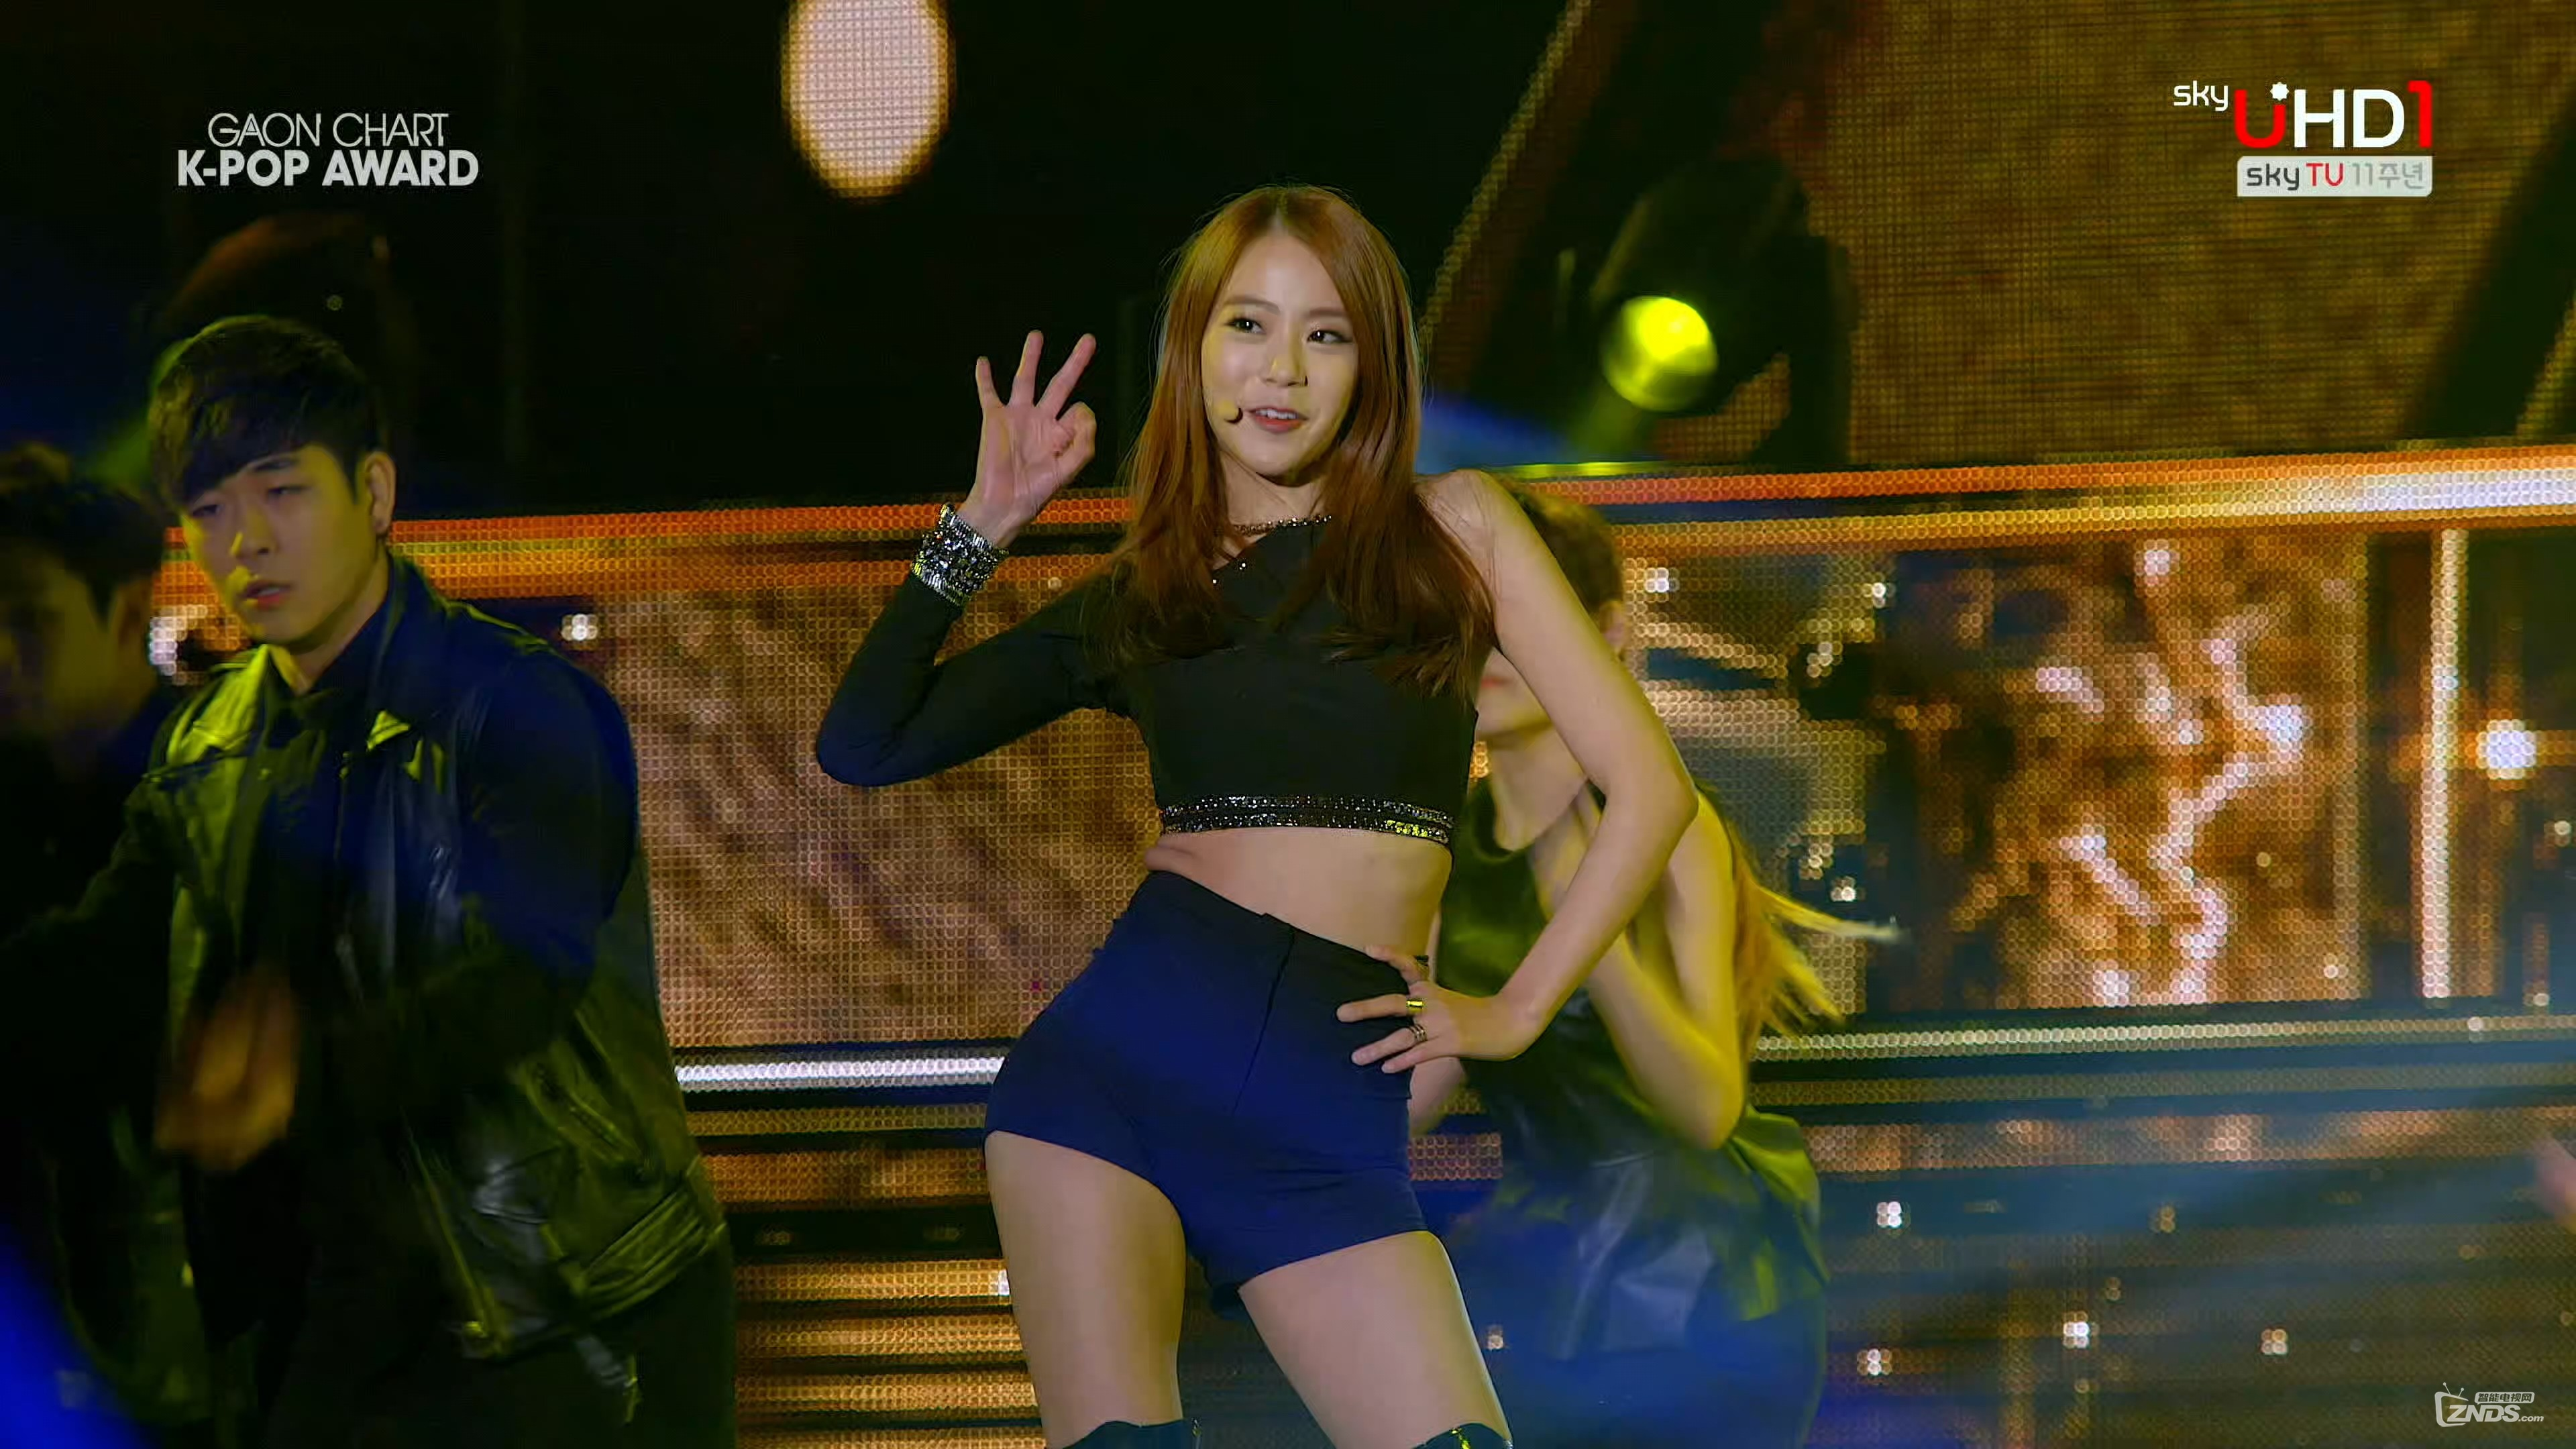 KARA - Mamma Mia (150128 SkyUHD 4th Gaon Chart K-Pop Awards).ts_2017_06.jpg